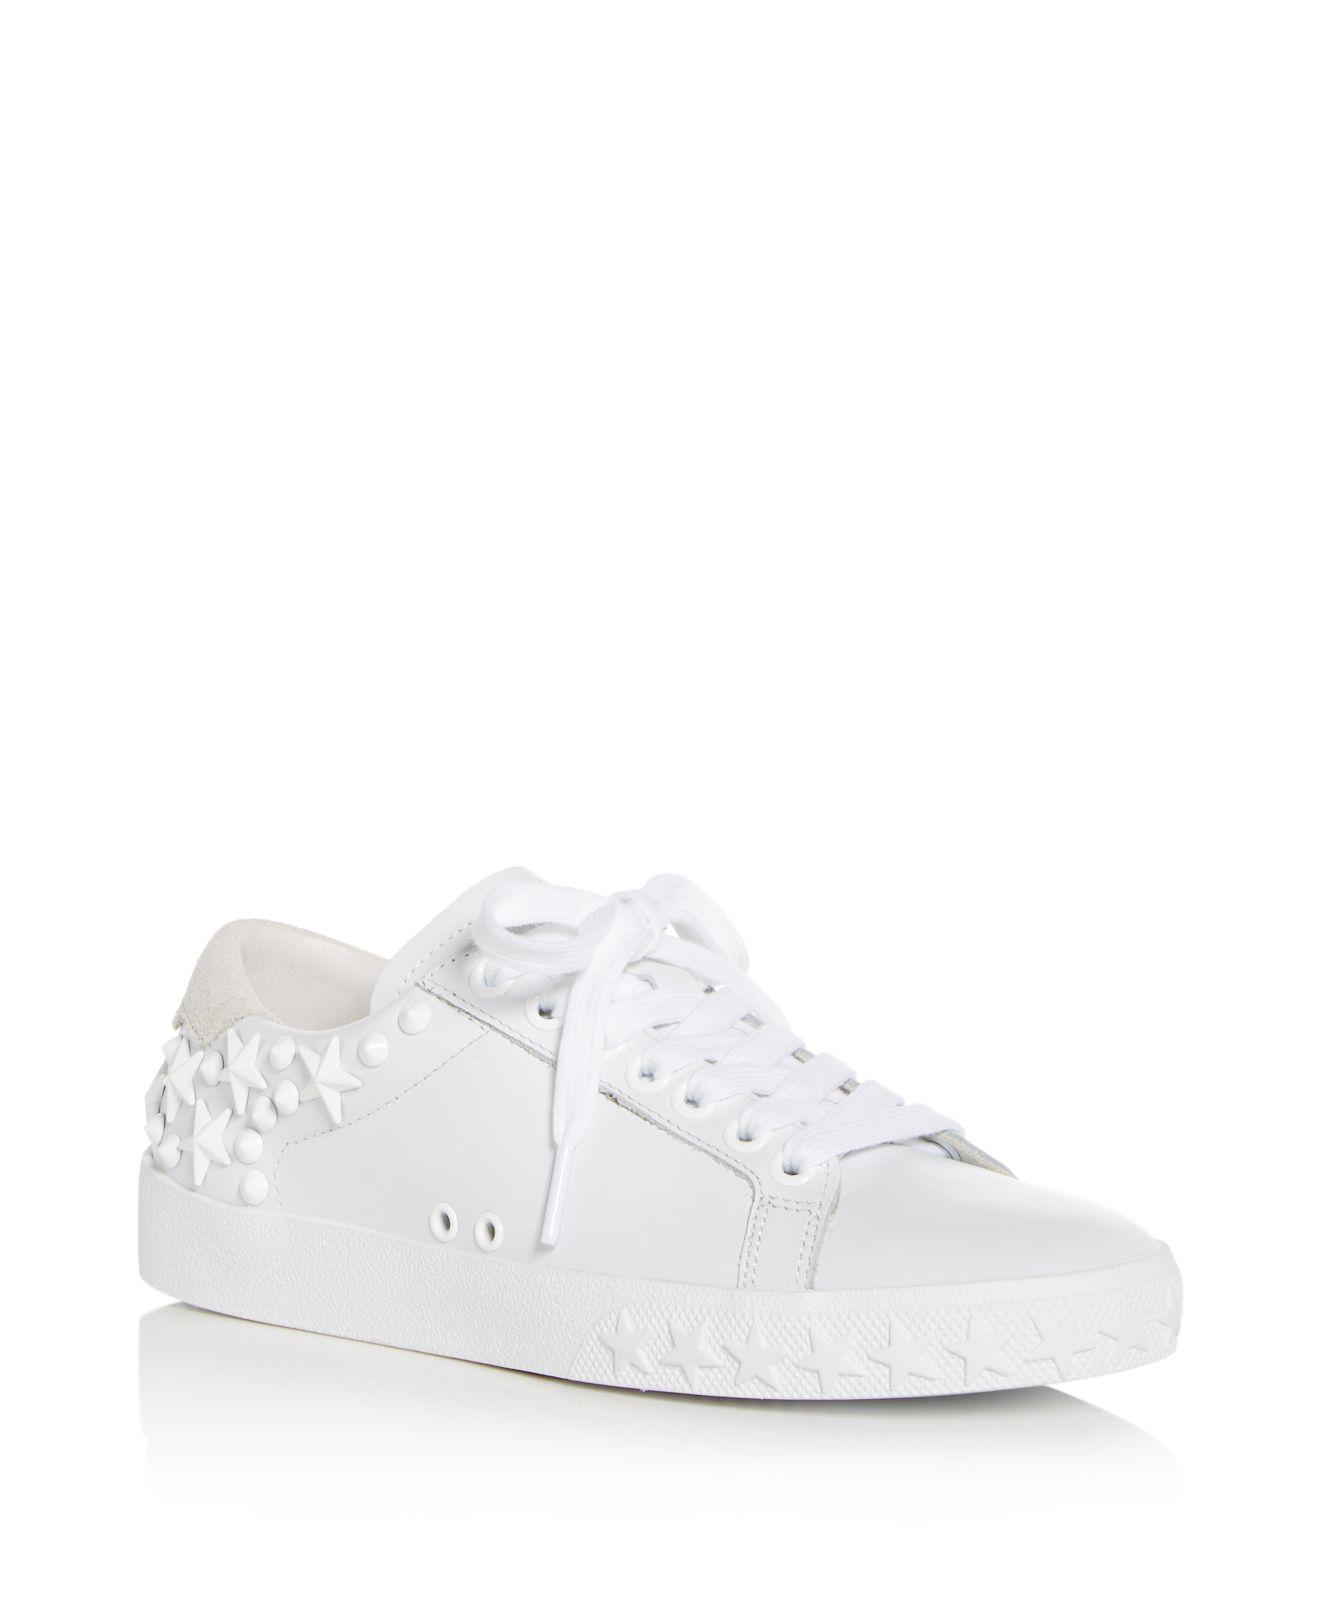 Ash Women's Dazed Embellished Leather Lace Up Sneakers